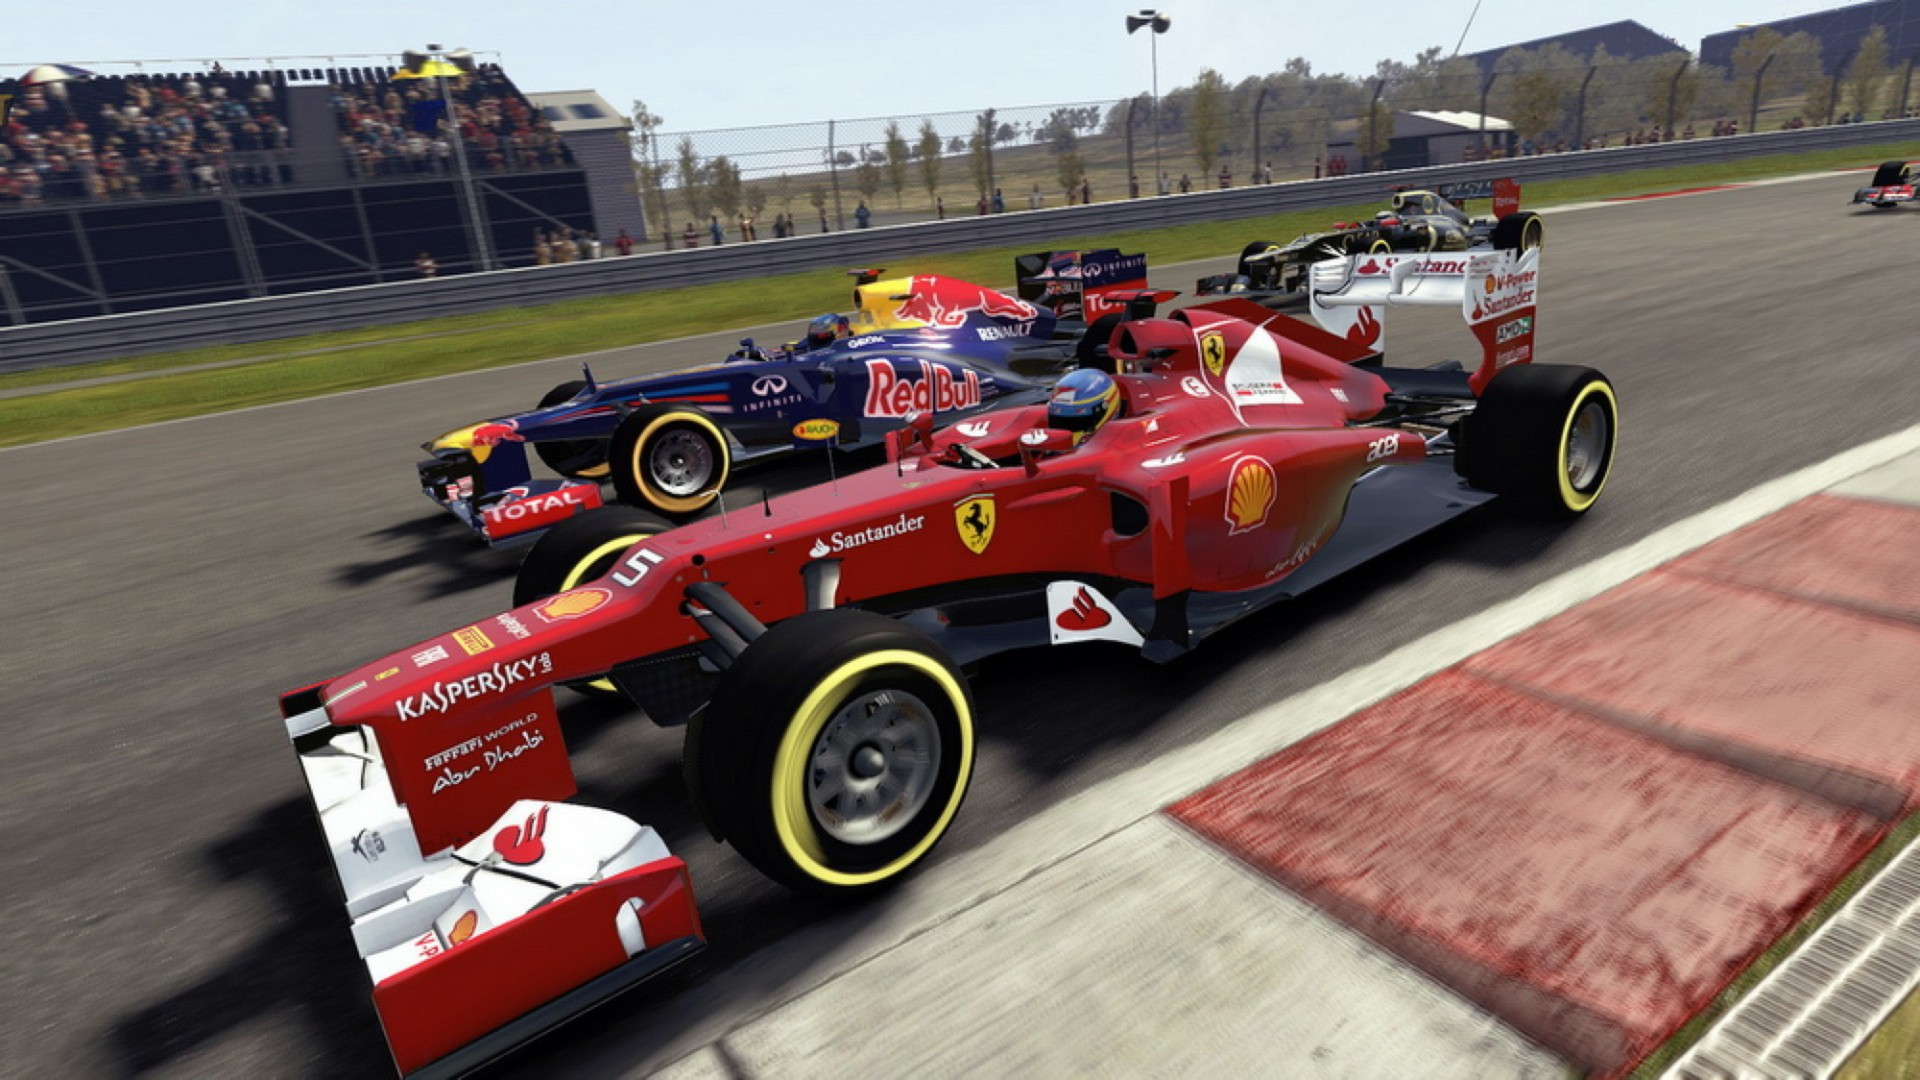 Find the best laptop for F1 2012